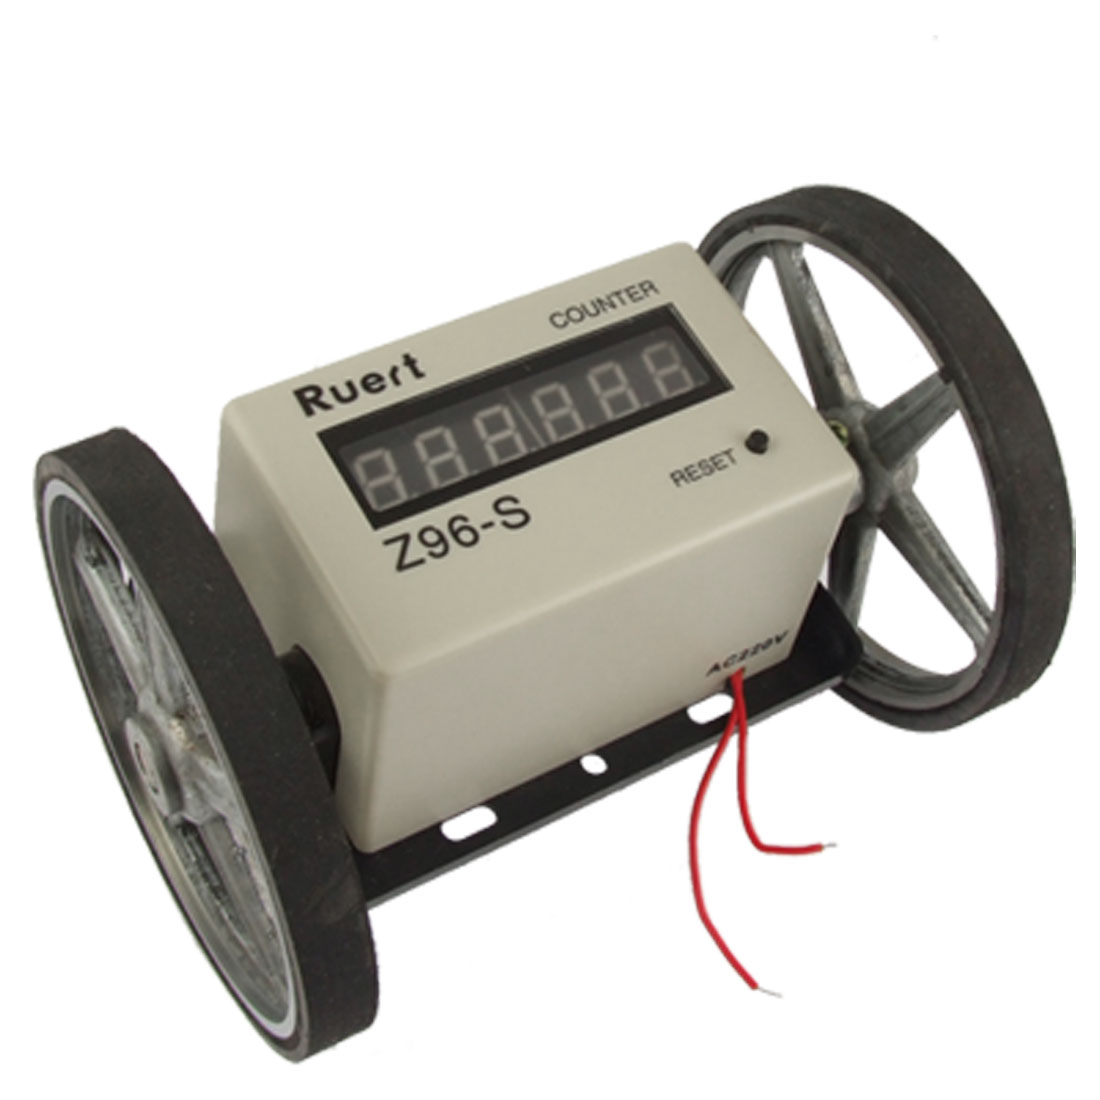 AC 220V 6 Digits Wheel Encoder Resettable Length Measure Counter